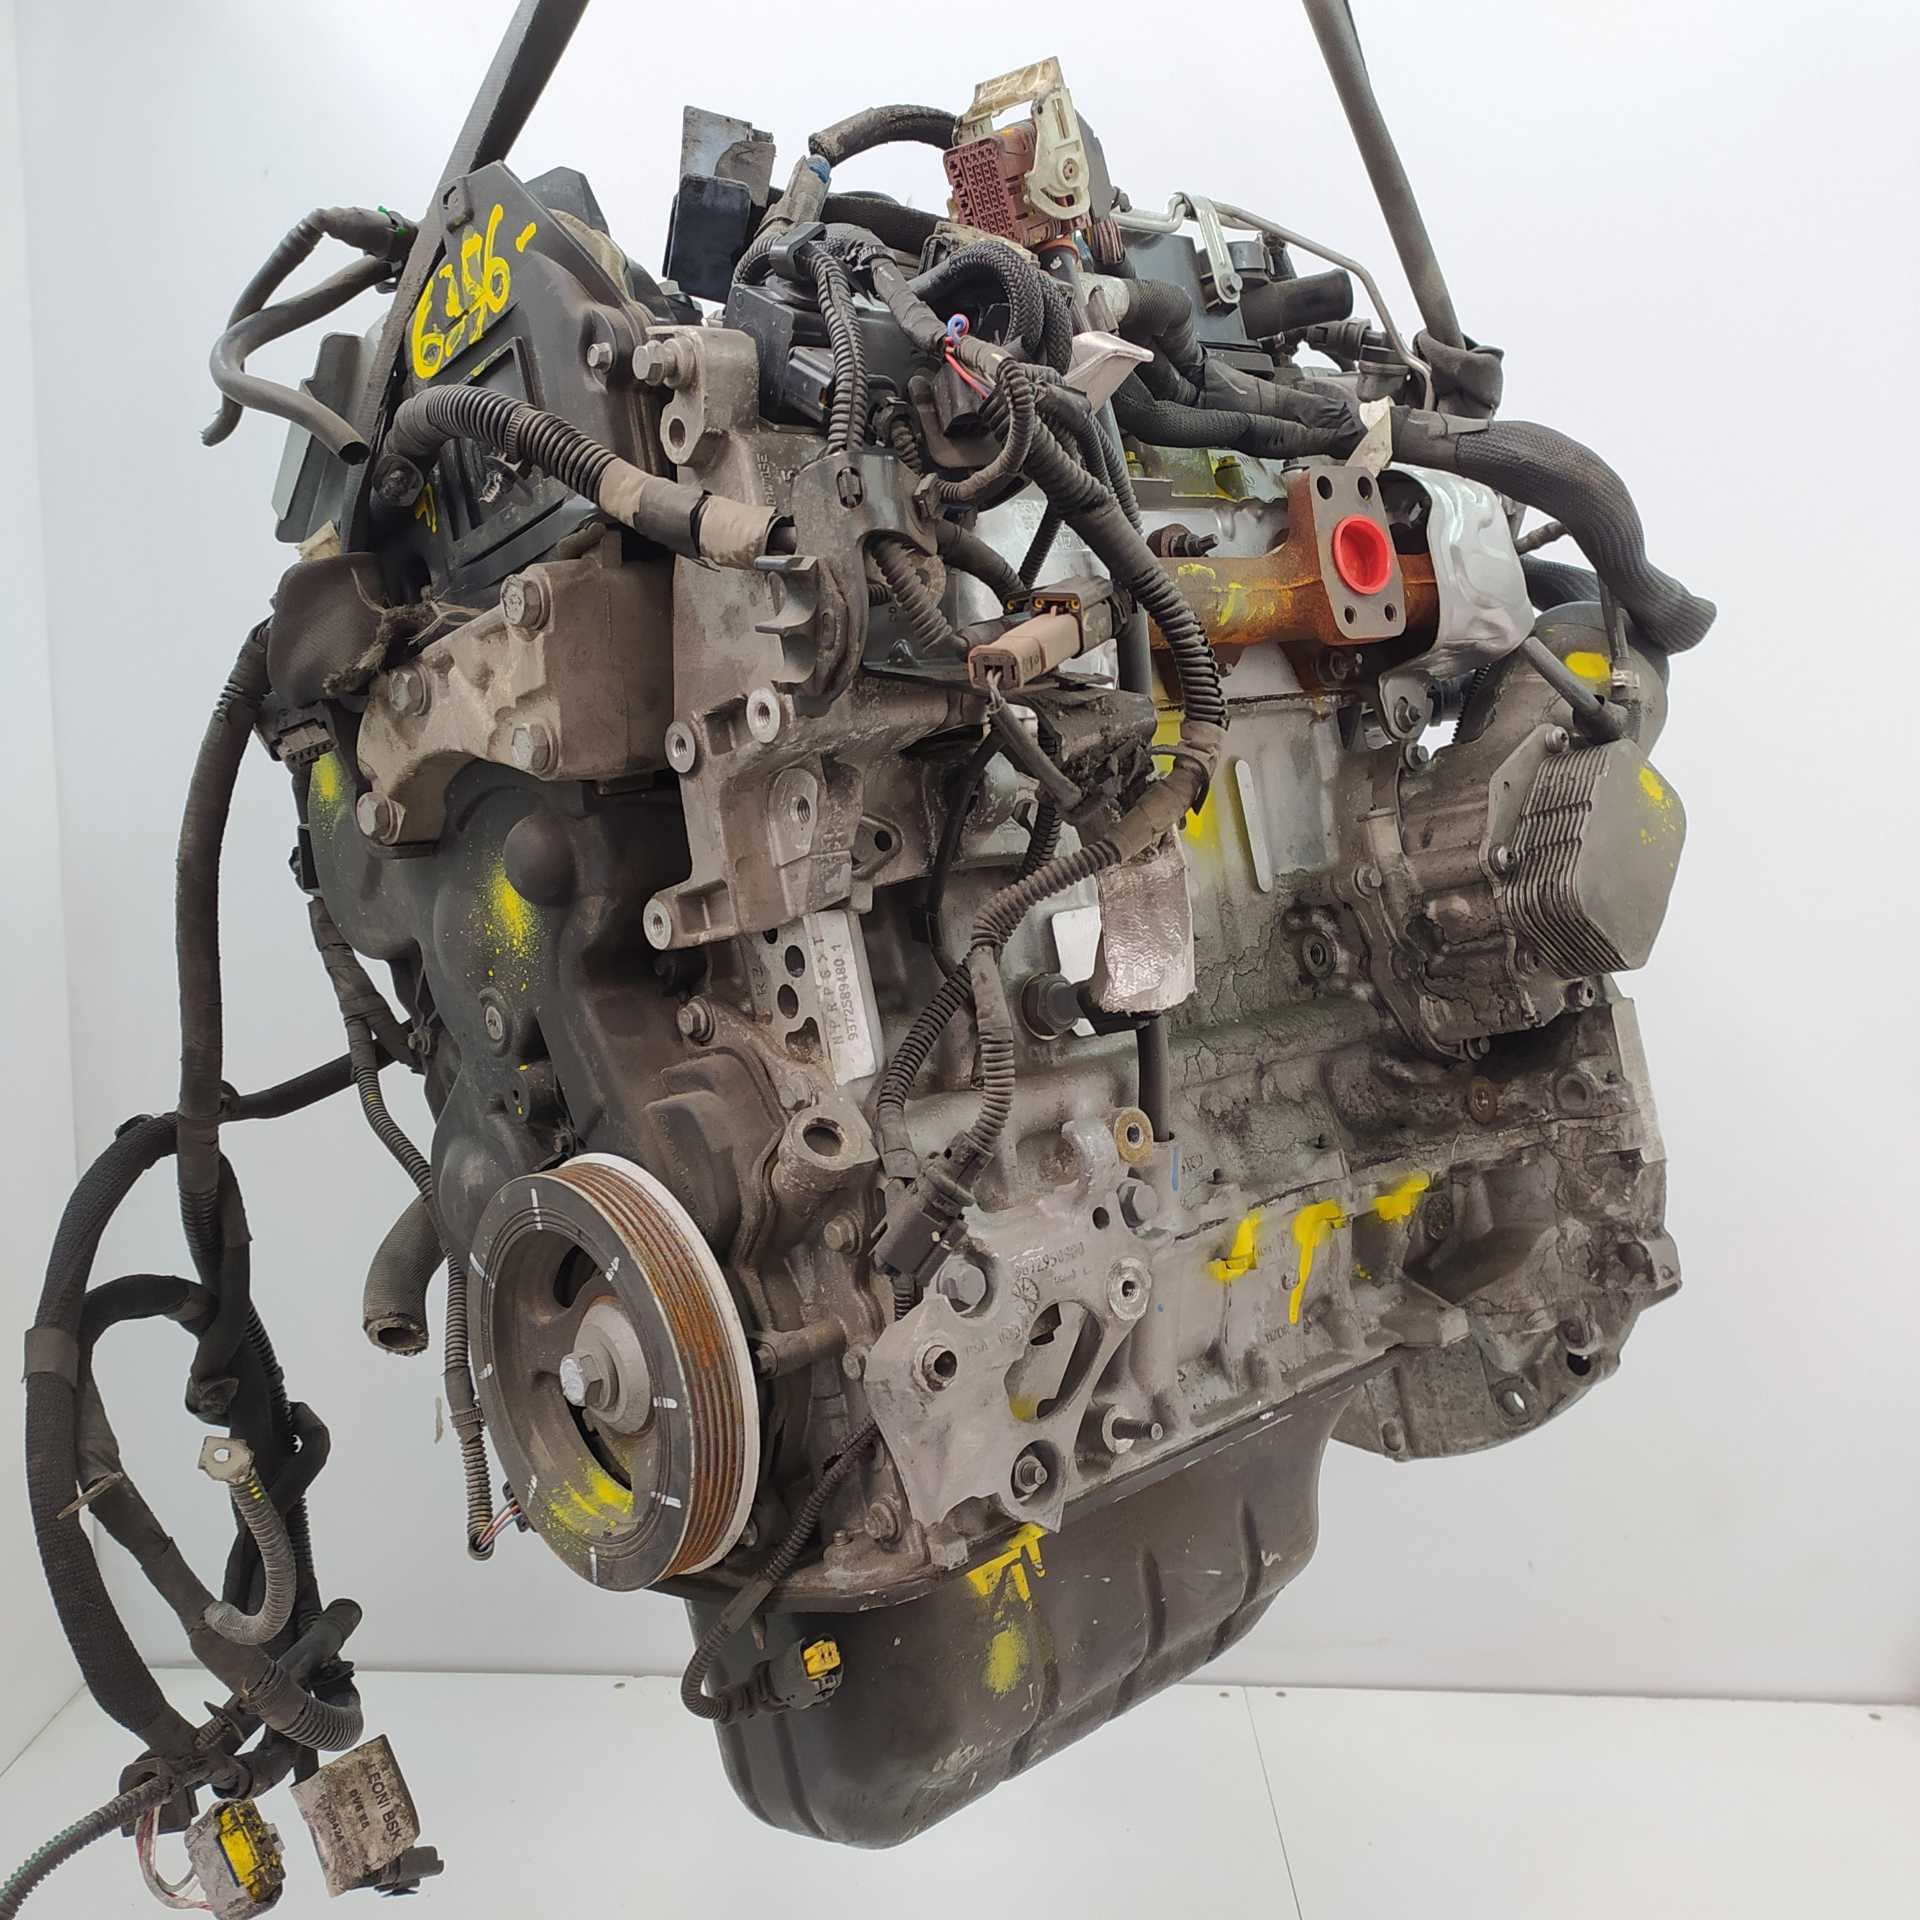 MOTOR COMPLETO PEUGEOT 207/207+ 1.4 HDi (50 KW / 68 CV) (02.2006 - 12.2015)